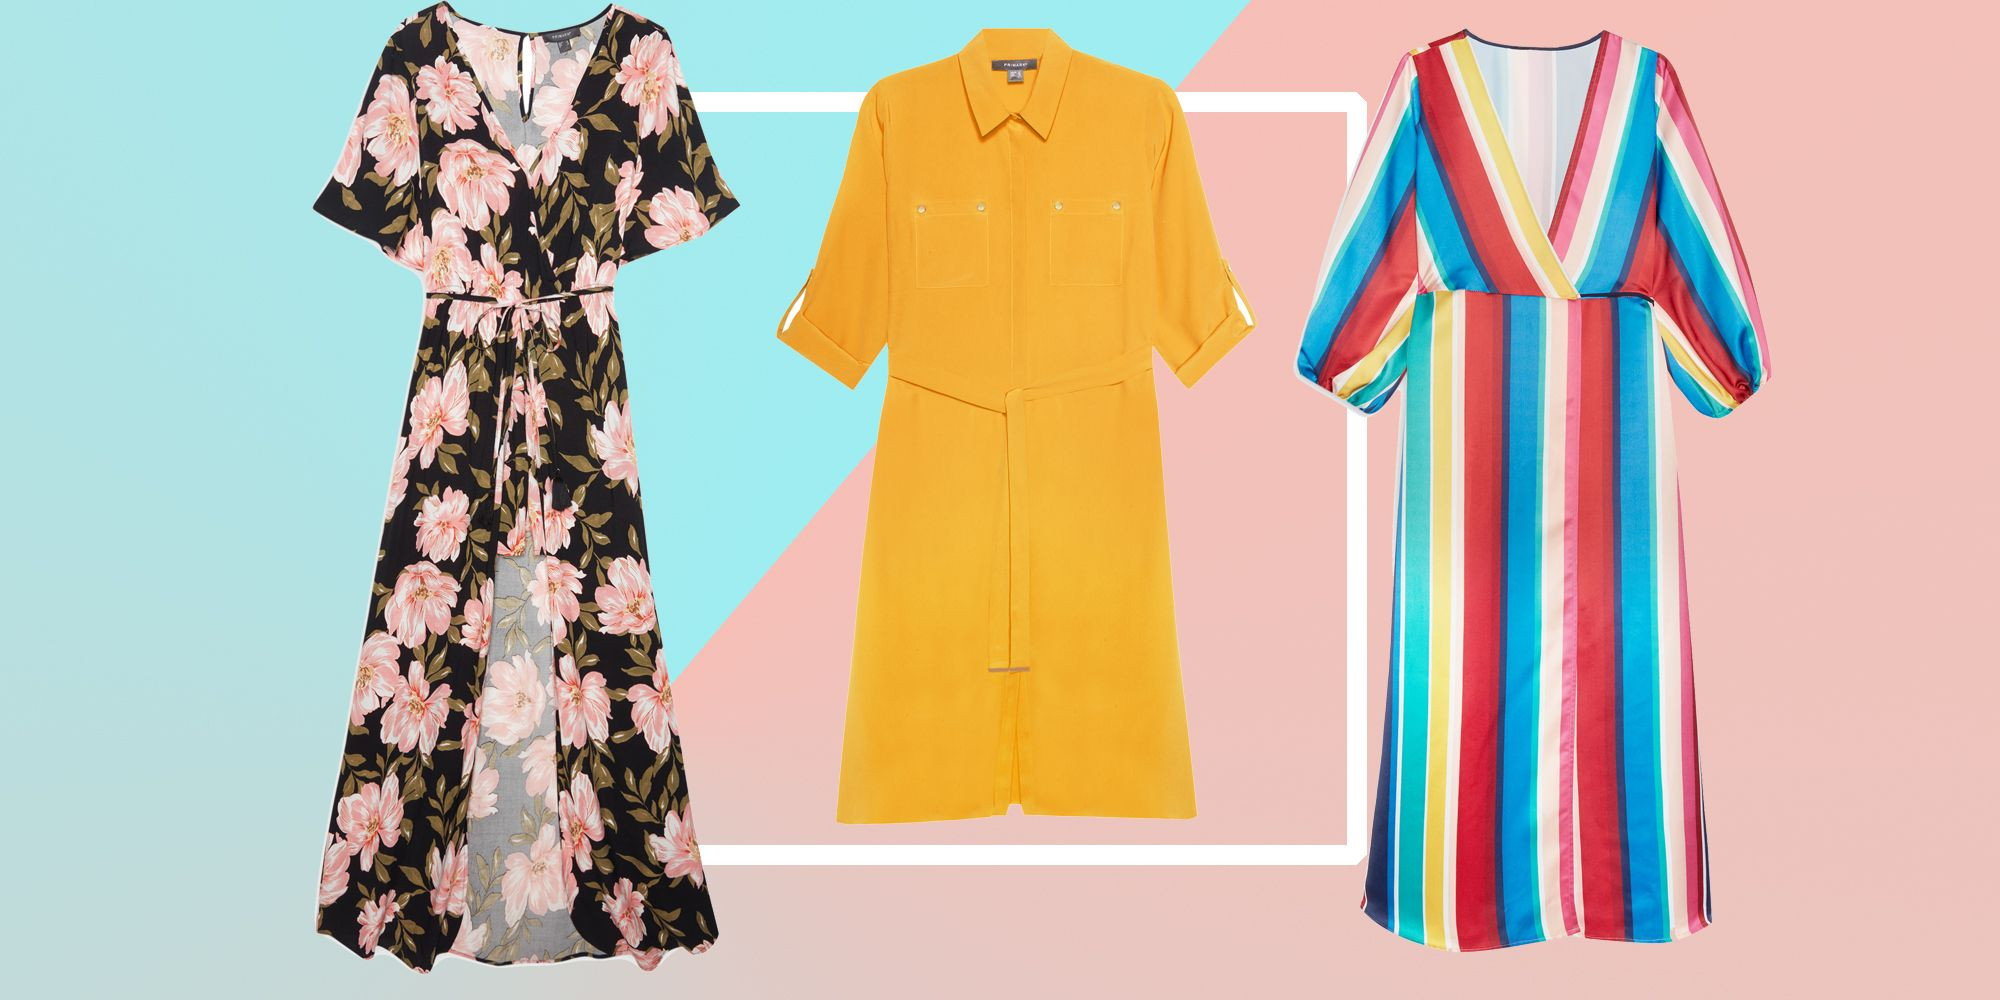 a8942d6a49 Best Primark summer dresses in the UK for 2018